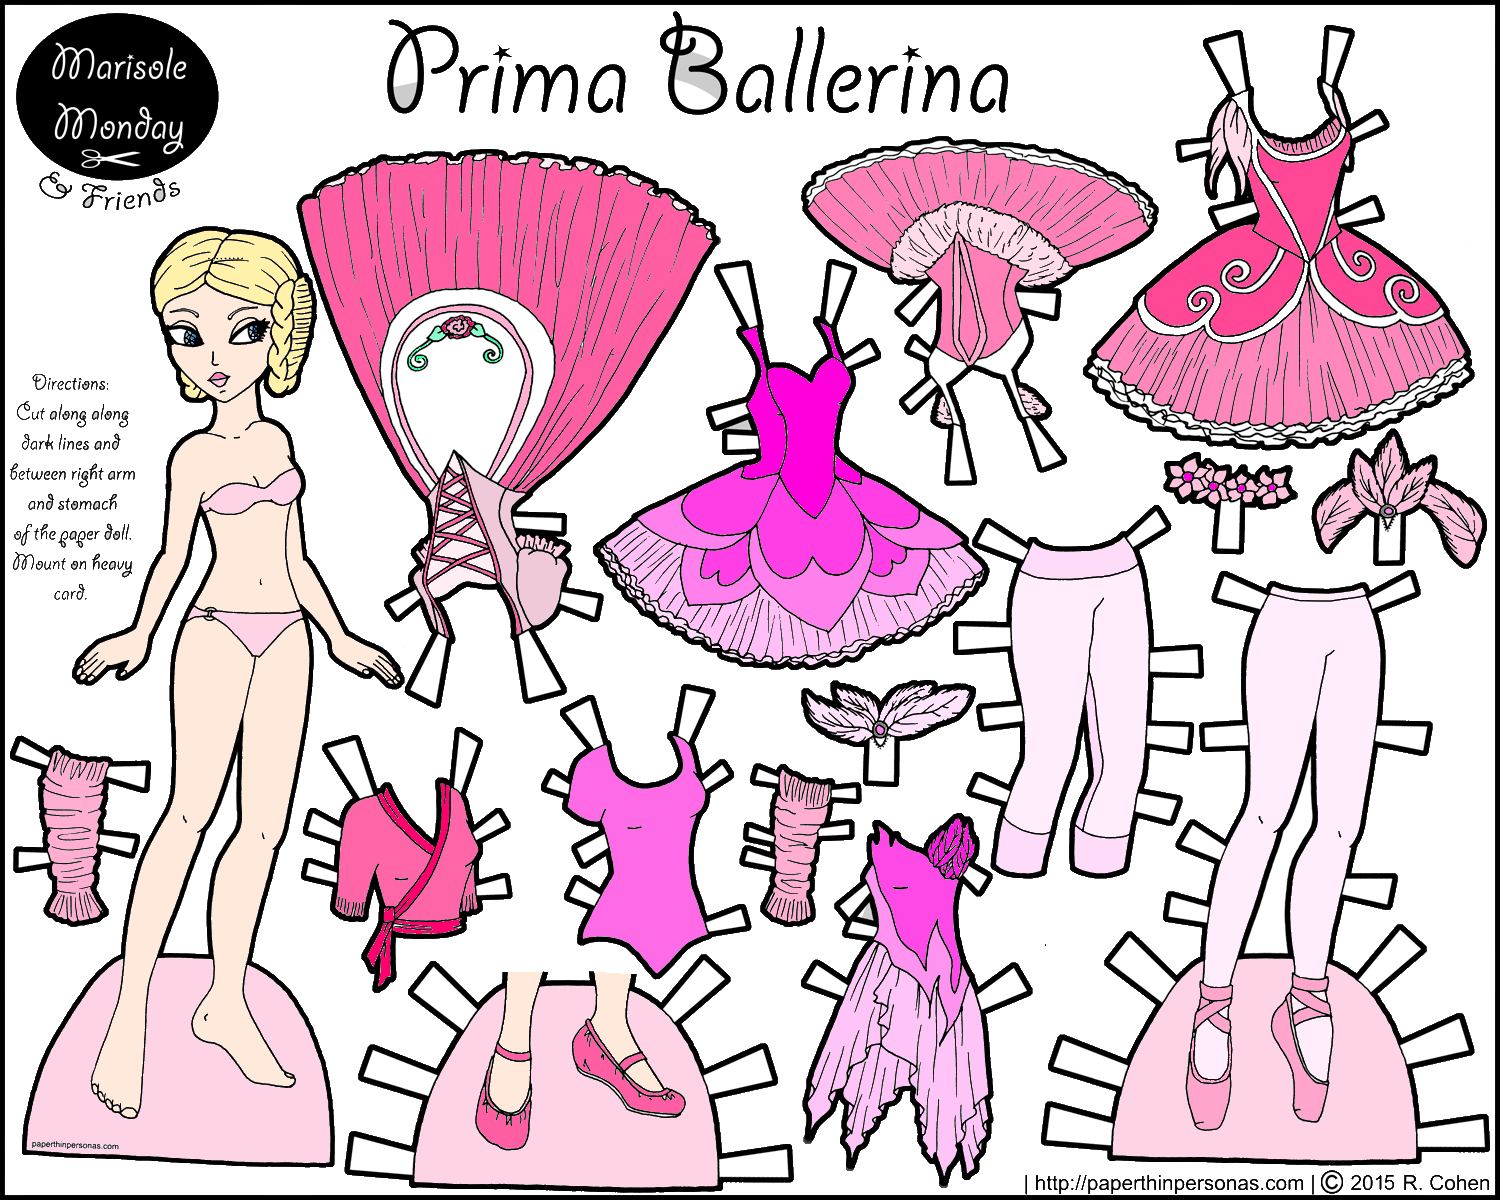 a pink ballerina paper doll by melinda paper dolls marisole monday and friends paper doll. Black Bedroom Furniture Sets. Home Design Ideas